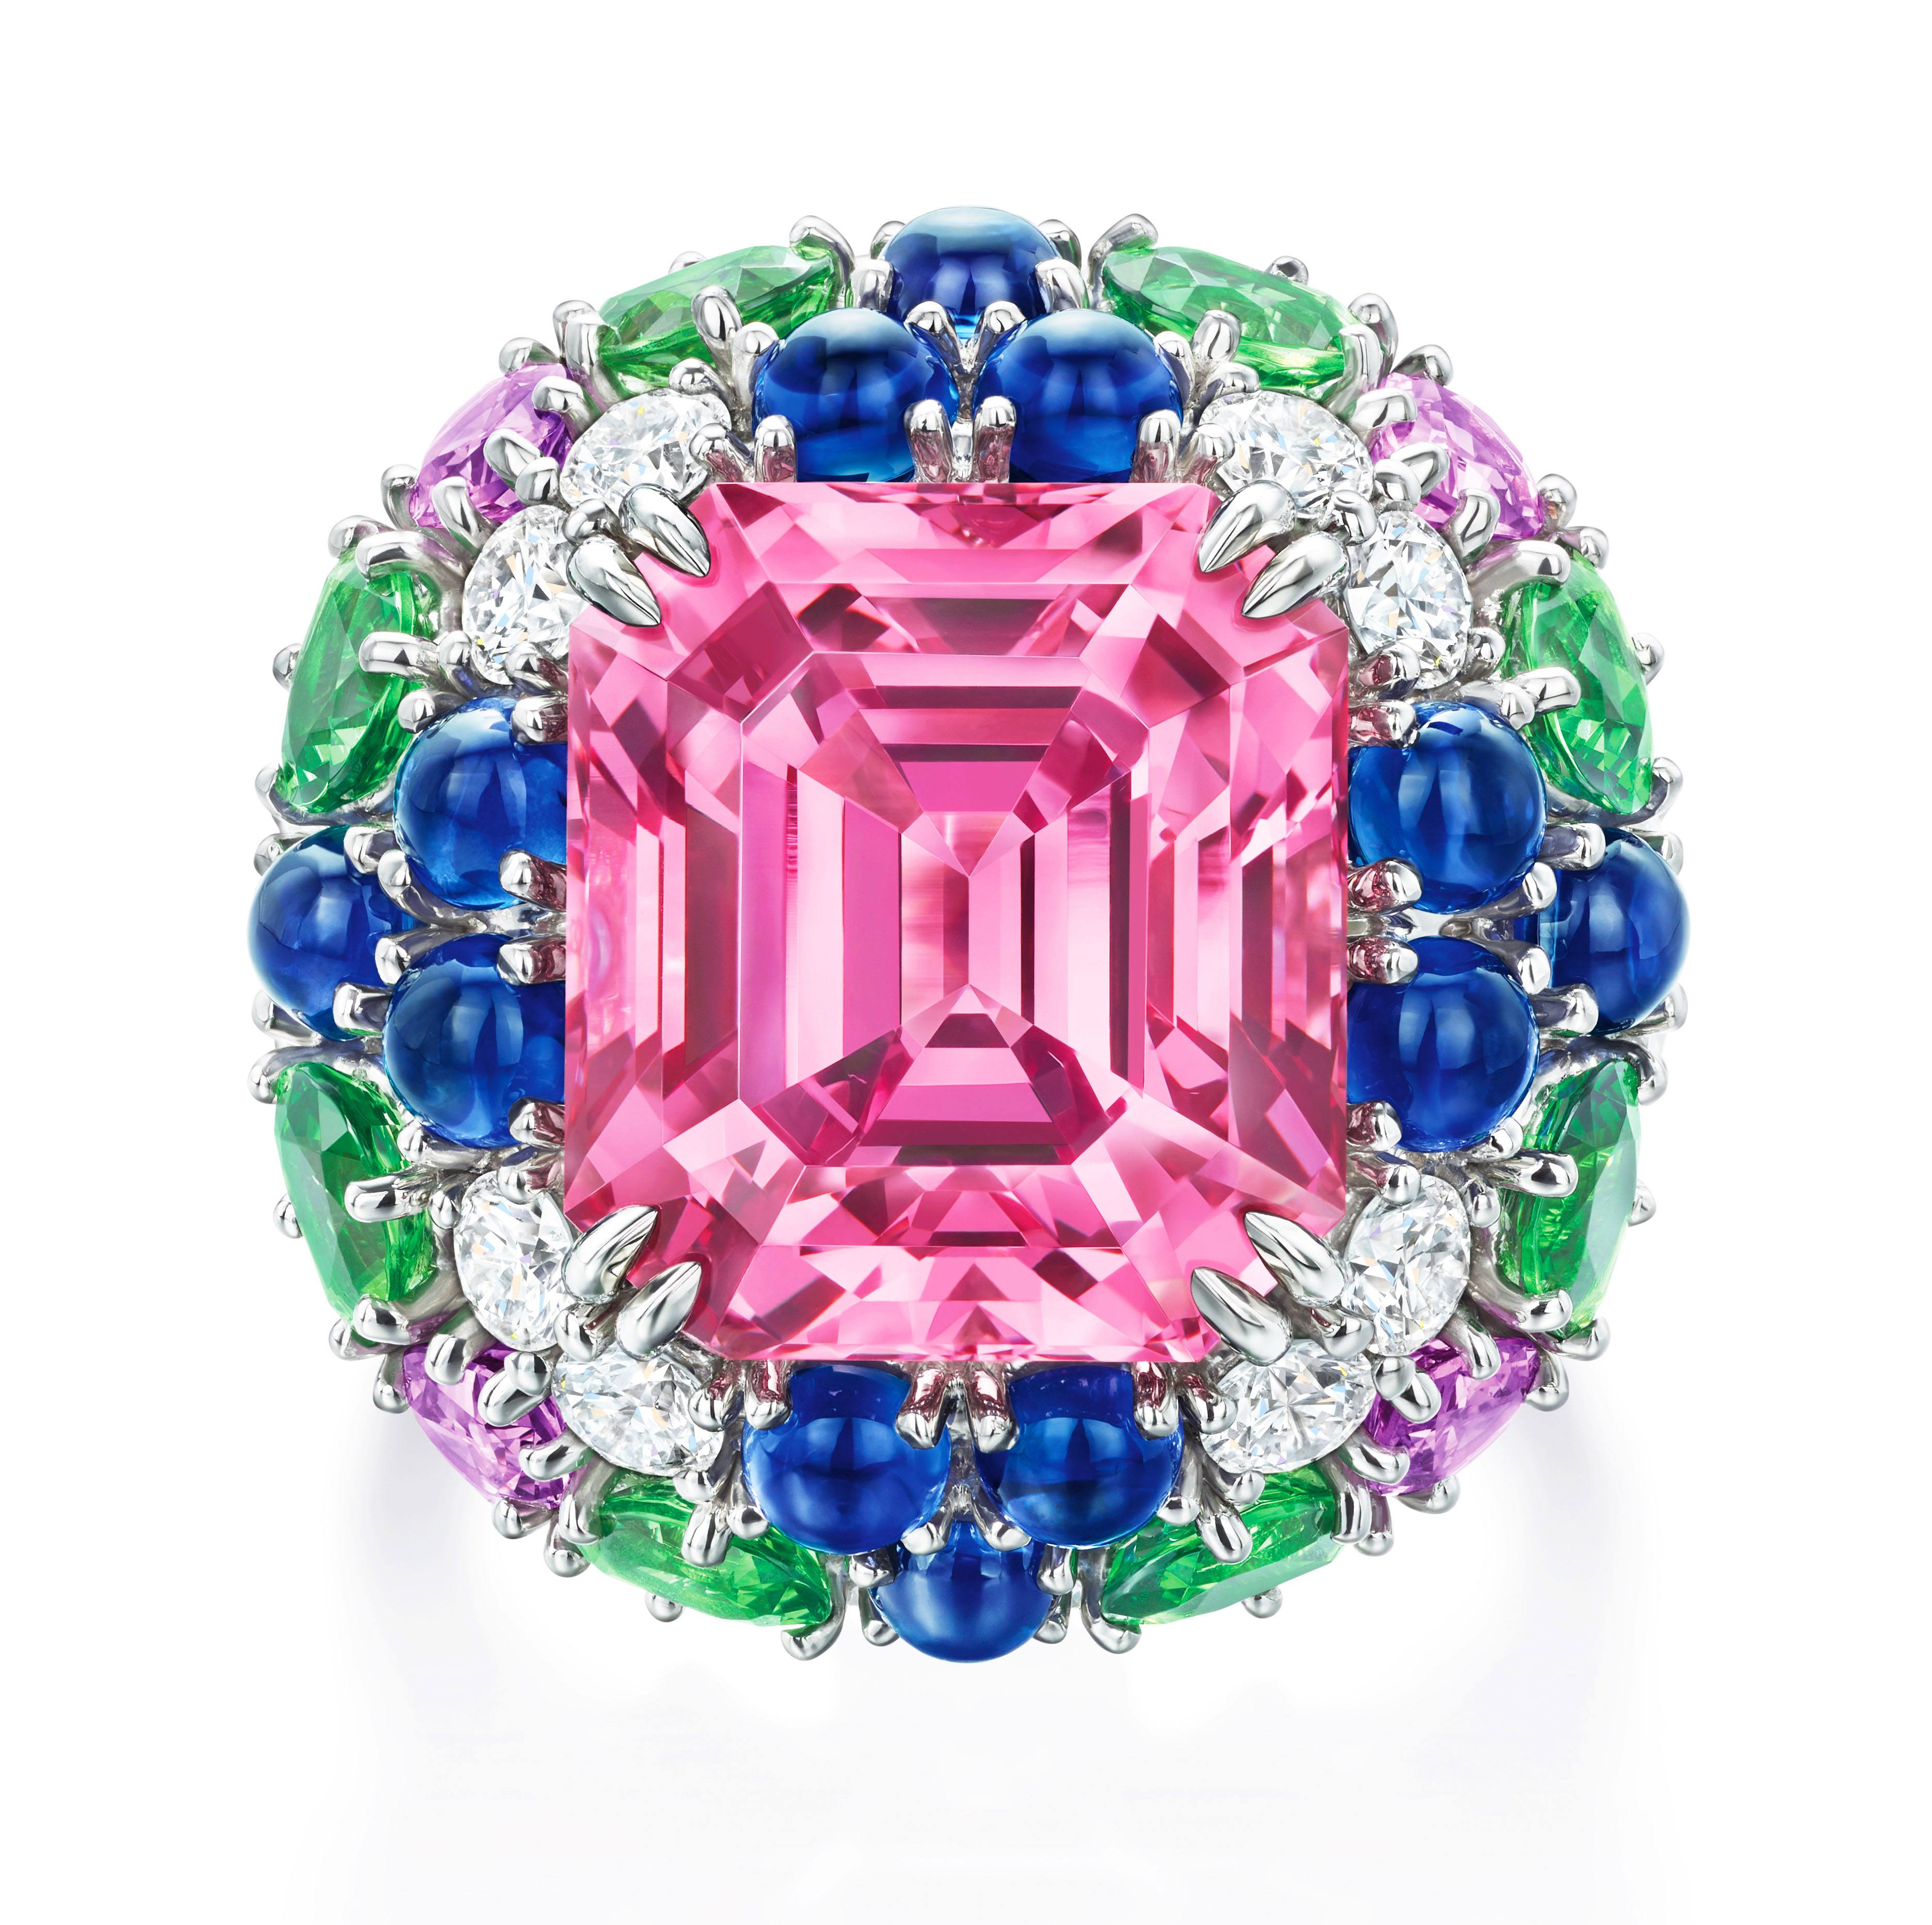 Limited Edition Harry Winston pink Pink Spinel Ring with Tsavorite Garnets, multi-colored Sapphires and Diamonds from the Candy Collection